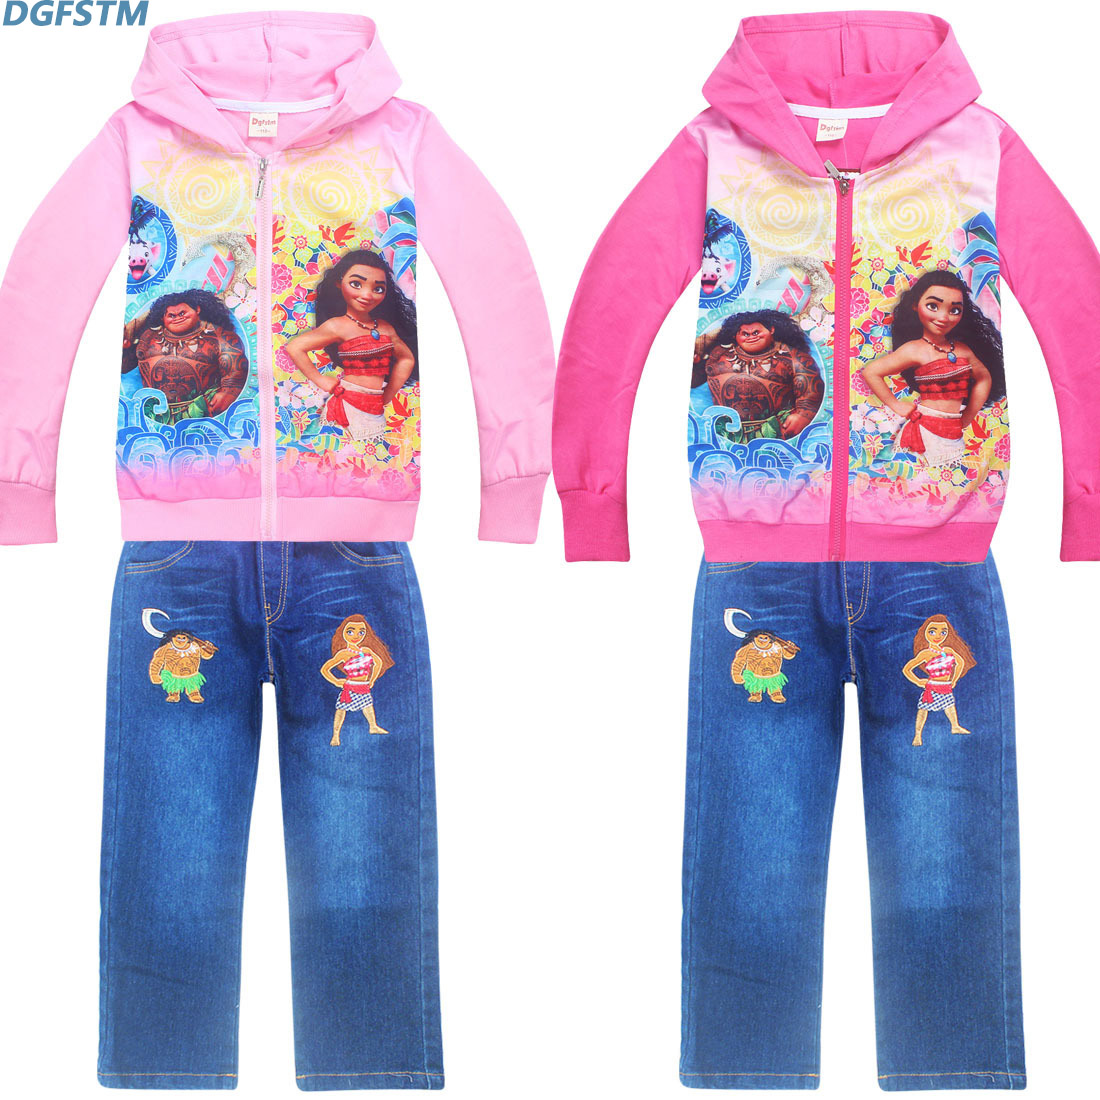 Autumn Spring New 3-10 Years Old Baby Kids Clothing Sets Children Girls Sweatshirt 1pcs Jeans Pants 1pcs Suits for Child Clothes